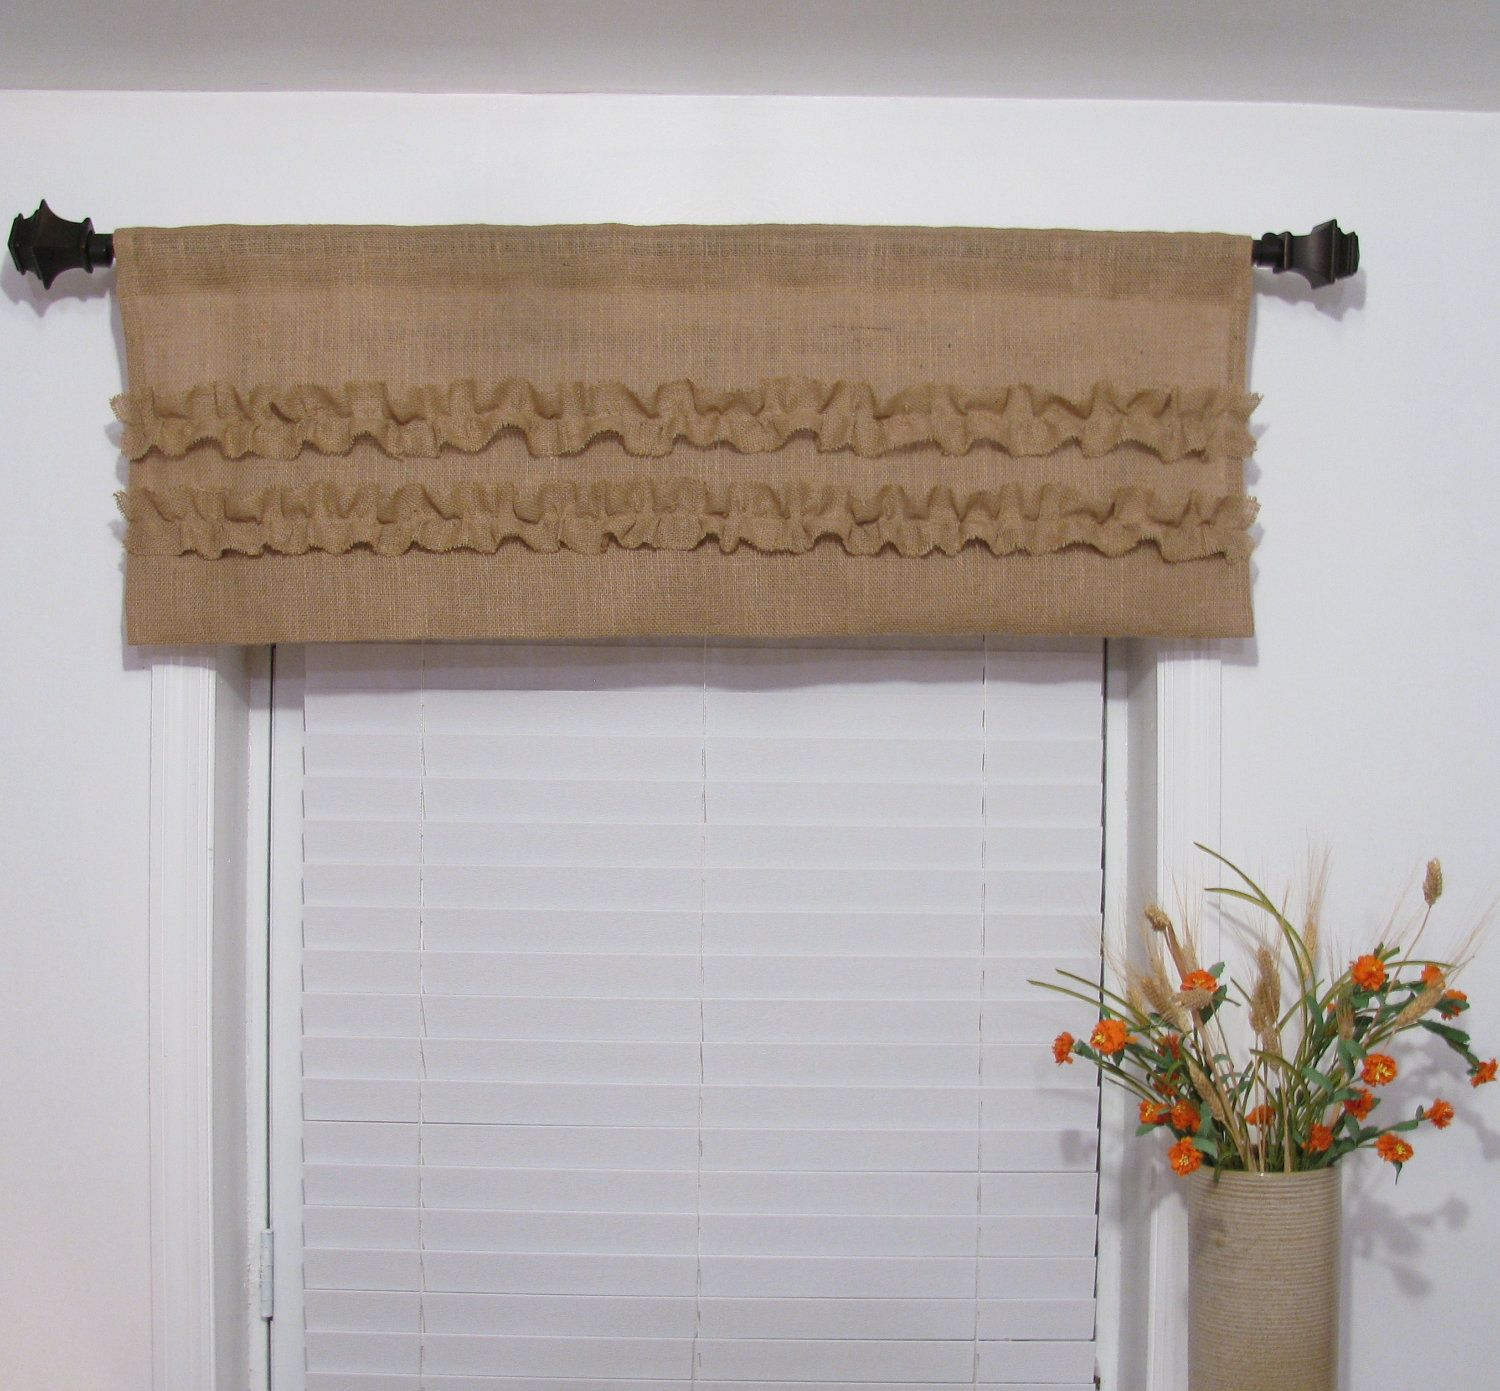 Natural burlap window valance ruffled rustic curtain custom sizing